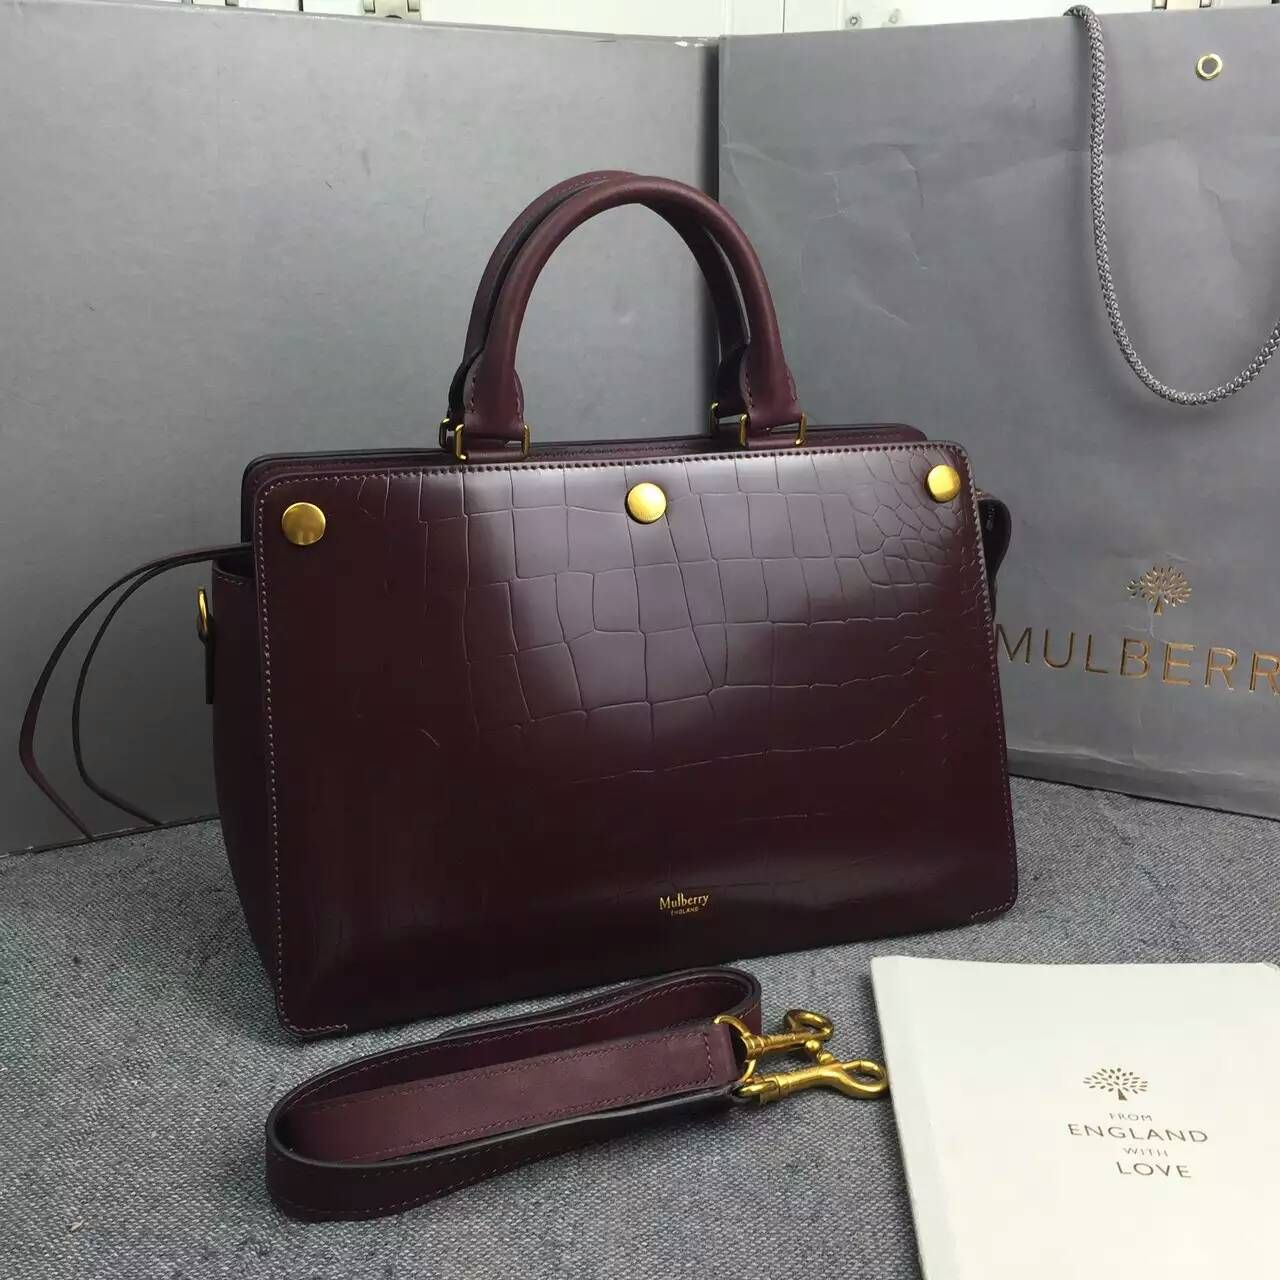 Larger Image Mulberry Bags 2017 Chester Oxblood Polished Embossed Croc